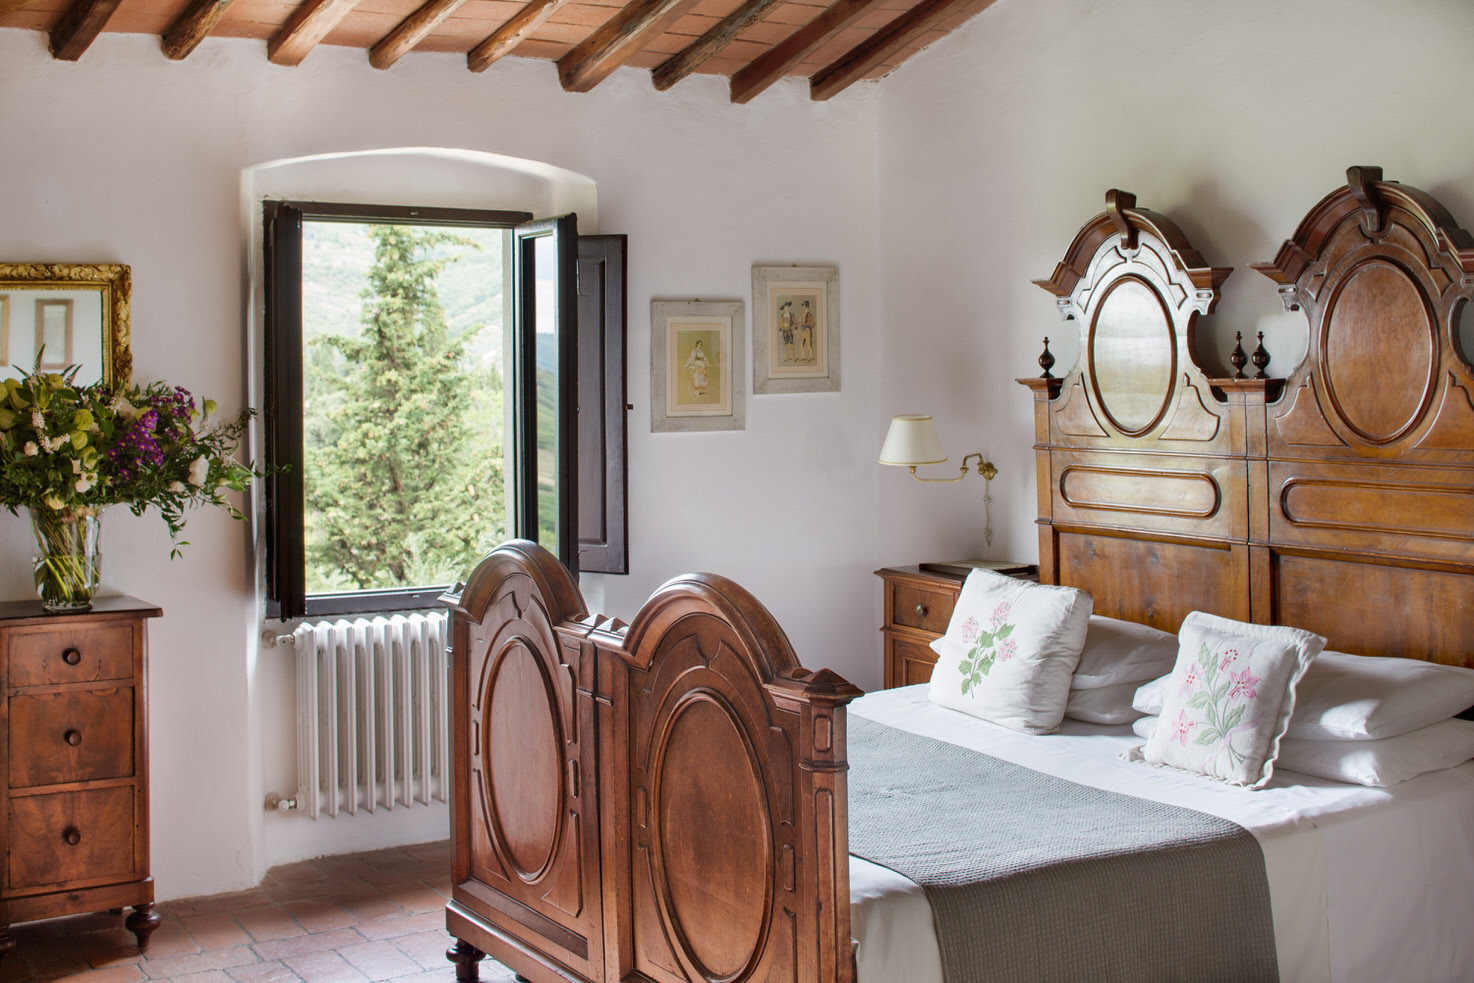 Room with view over the countryside